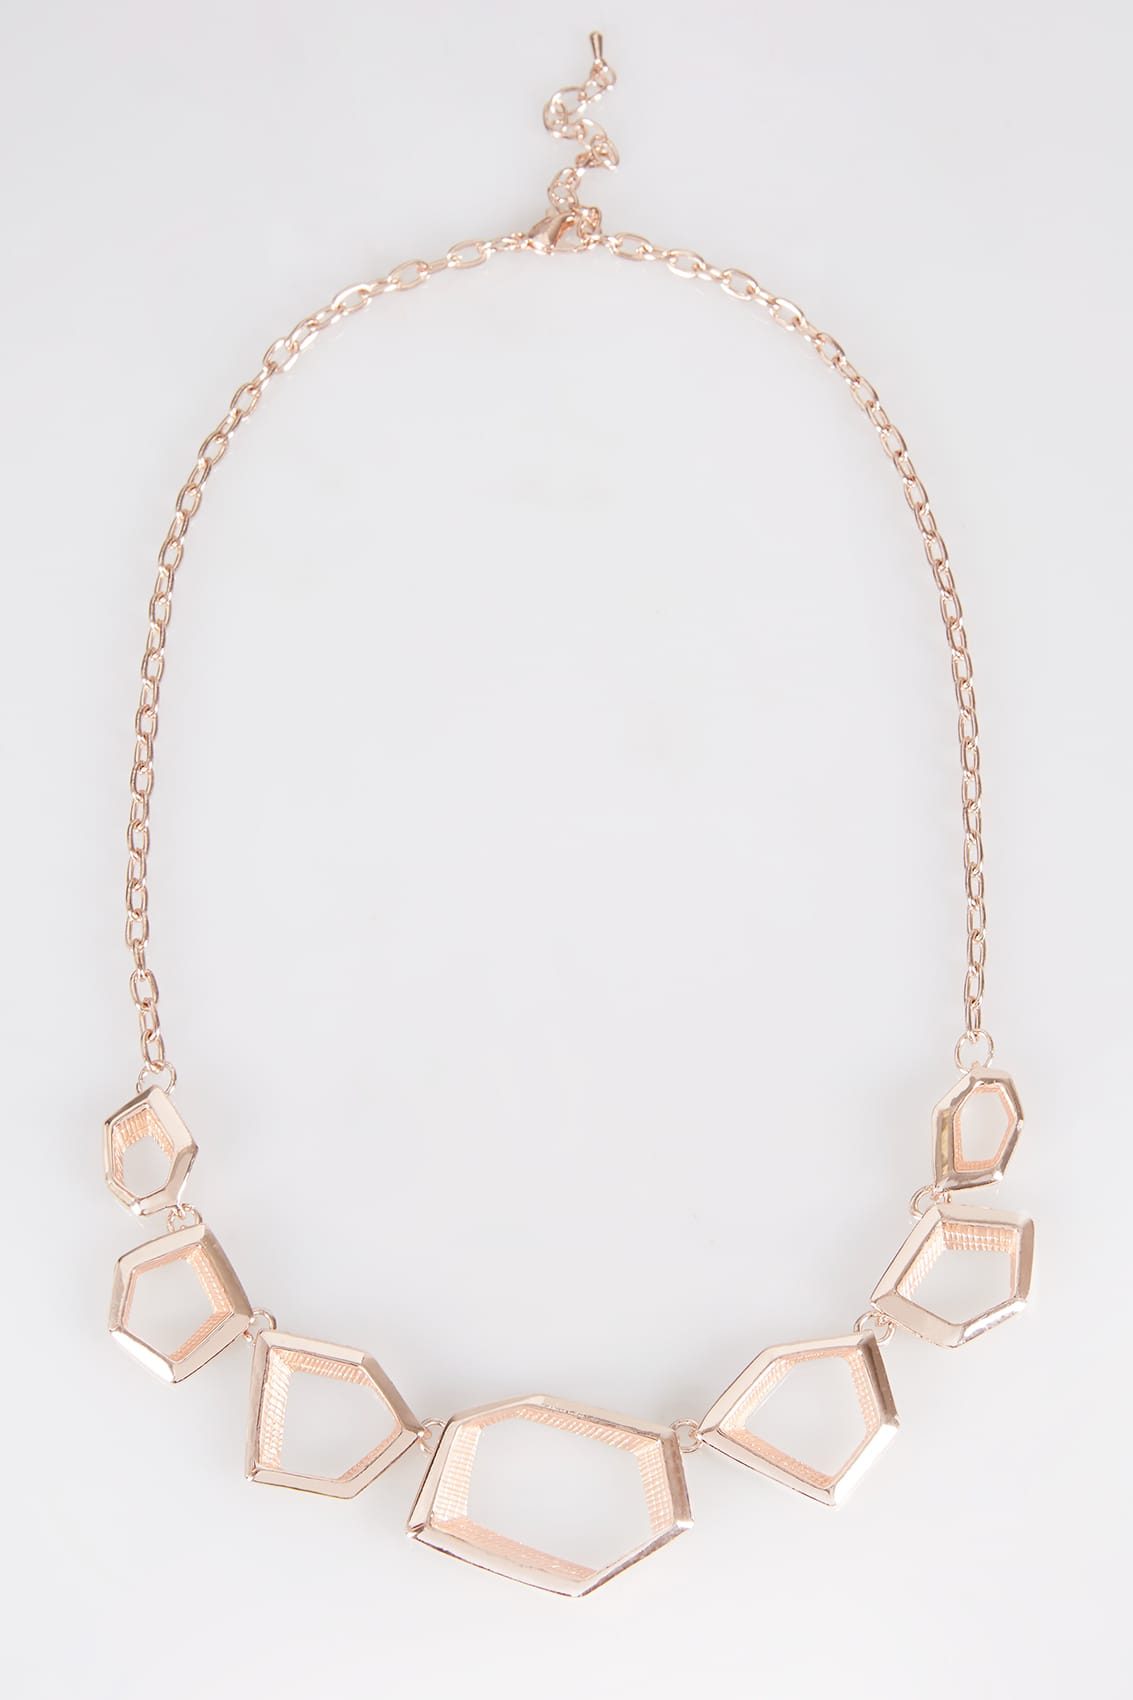 Rose Gold Geometric Necklace Pertaining To Most Recently Released Geometric Lines Necklaces (View 13 of 25)